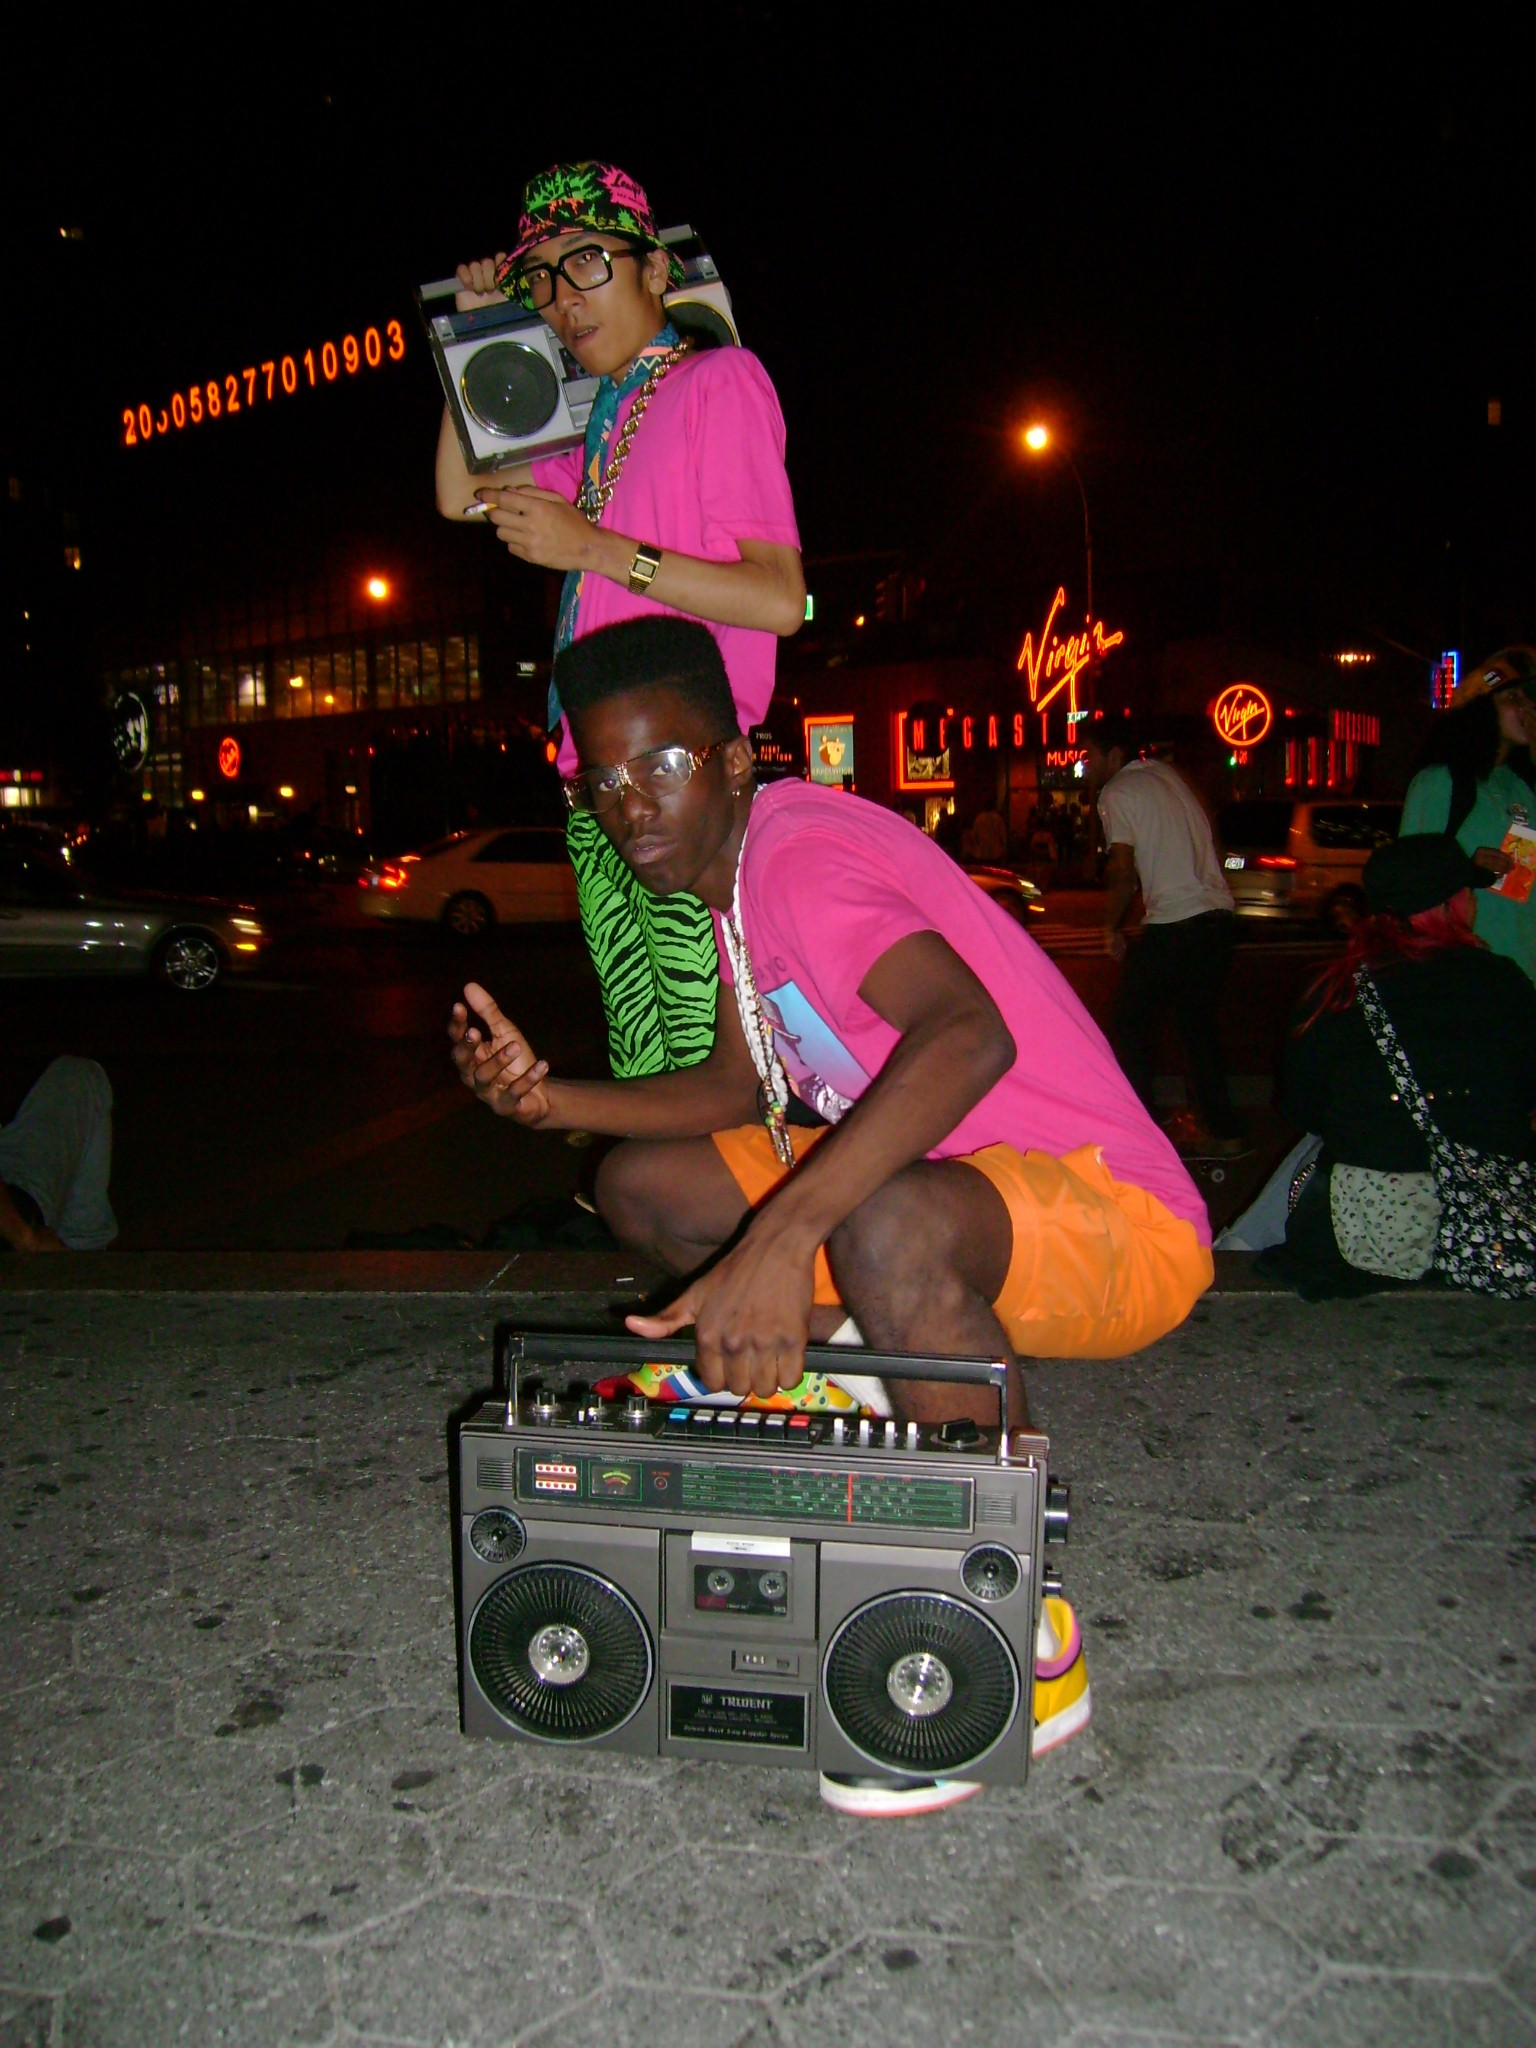 80s Hip Hop kids pose with boom boxes